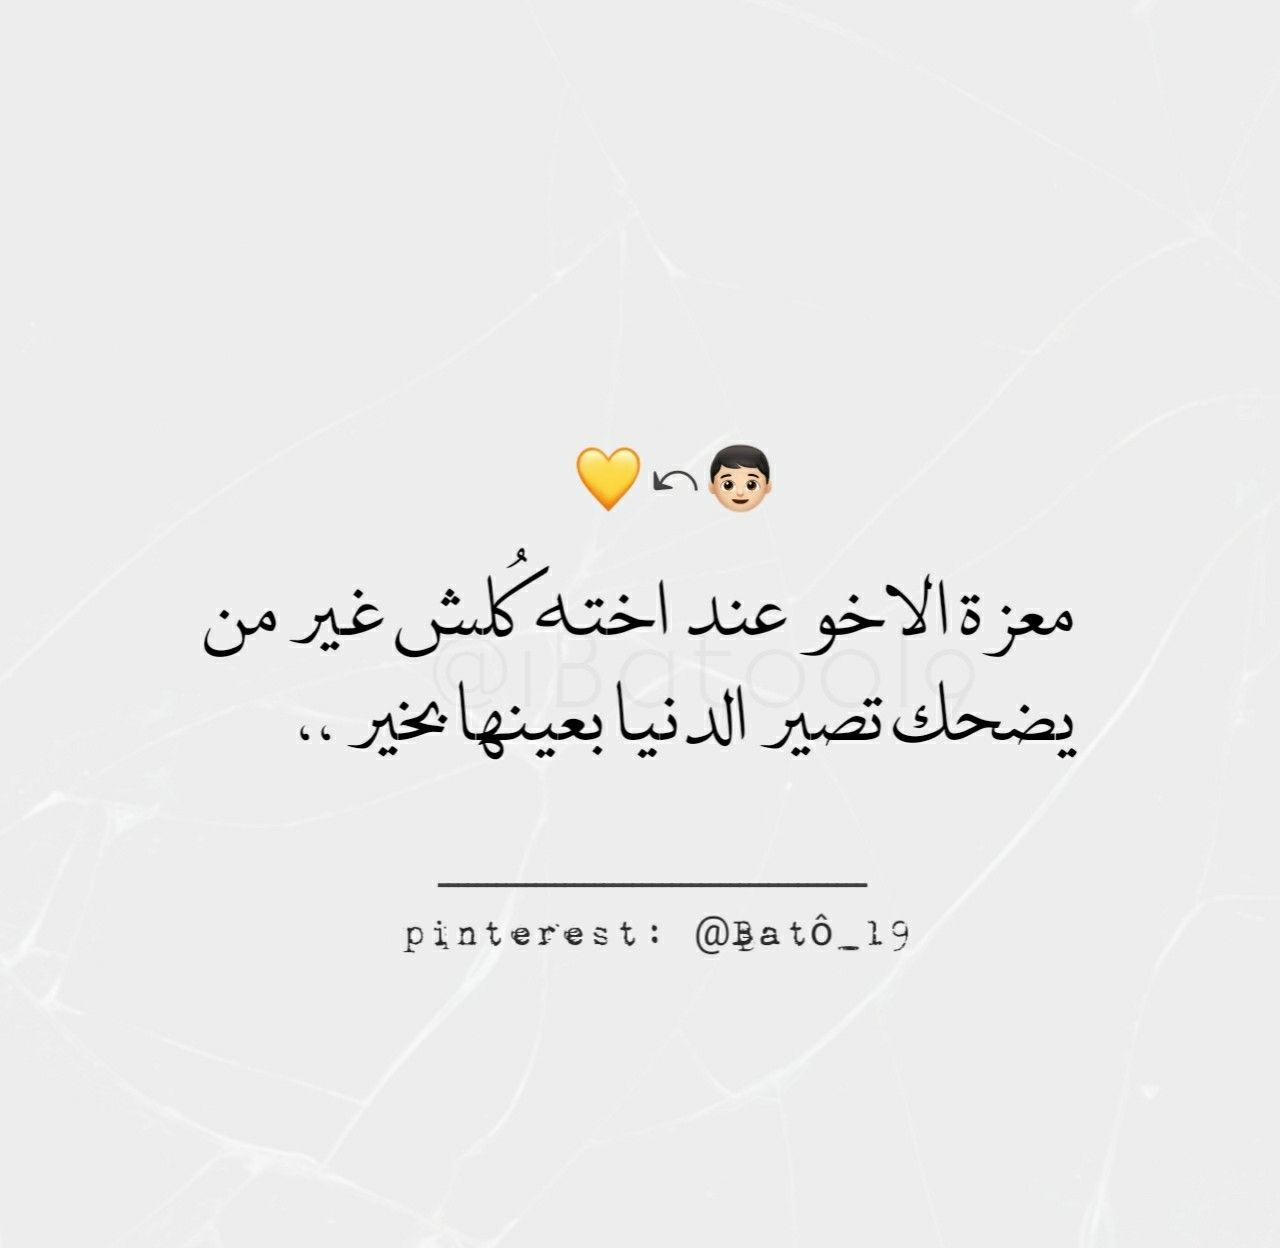 Pin By Hanane Aaitouna On روح In 2020 Snap Quotes Arabic Love Quotes Arabic Quotes